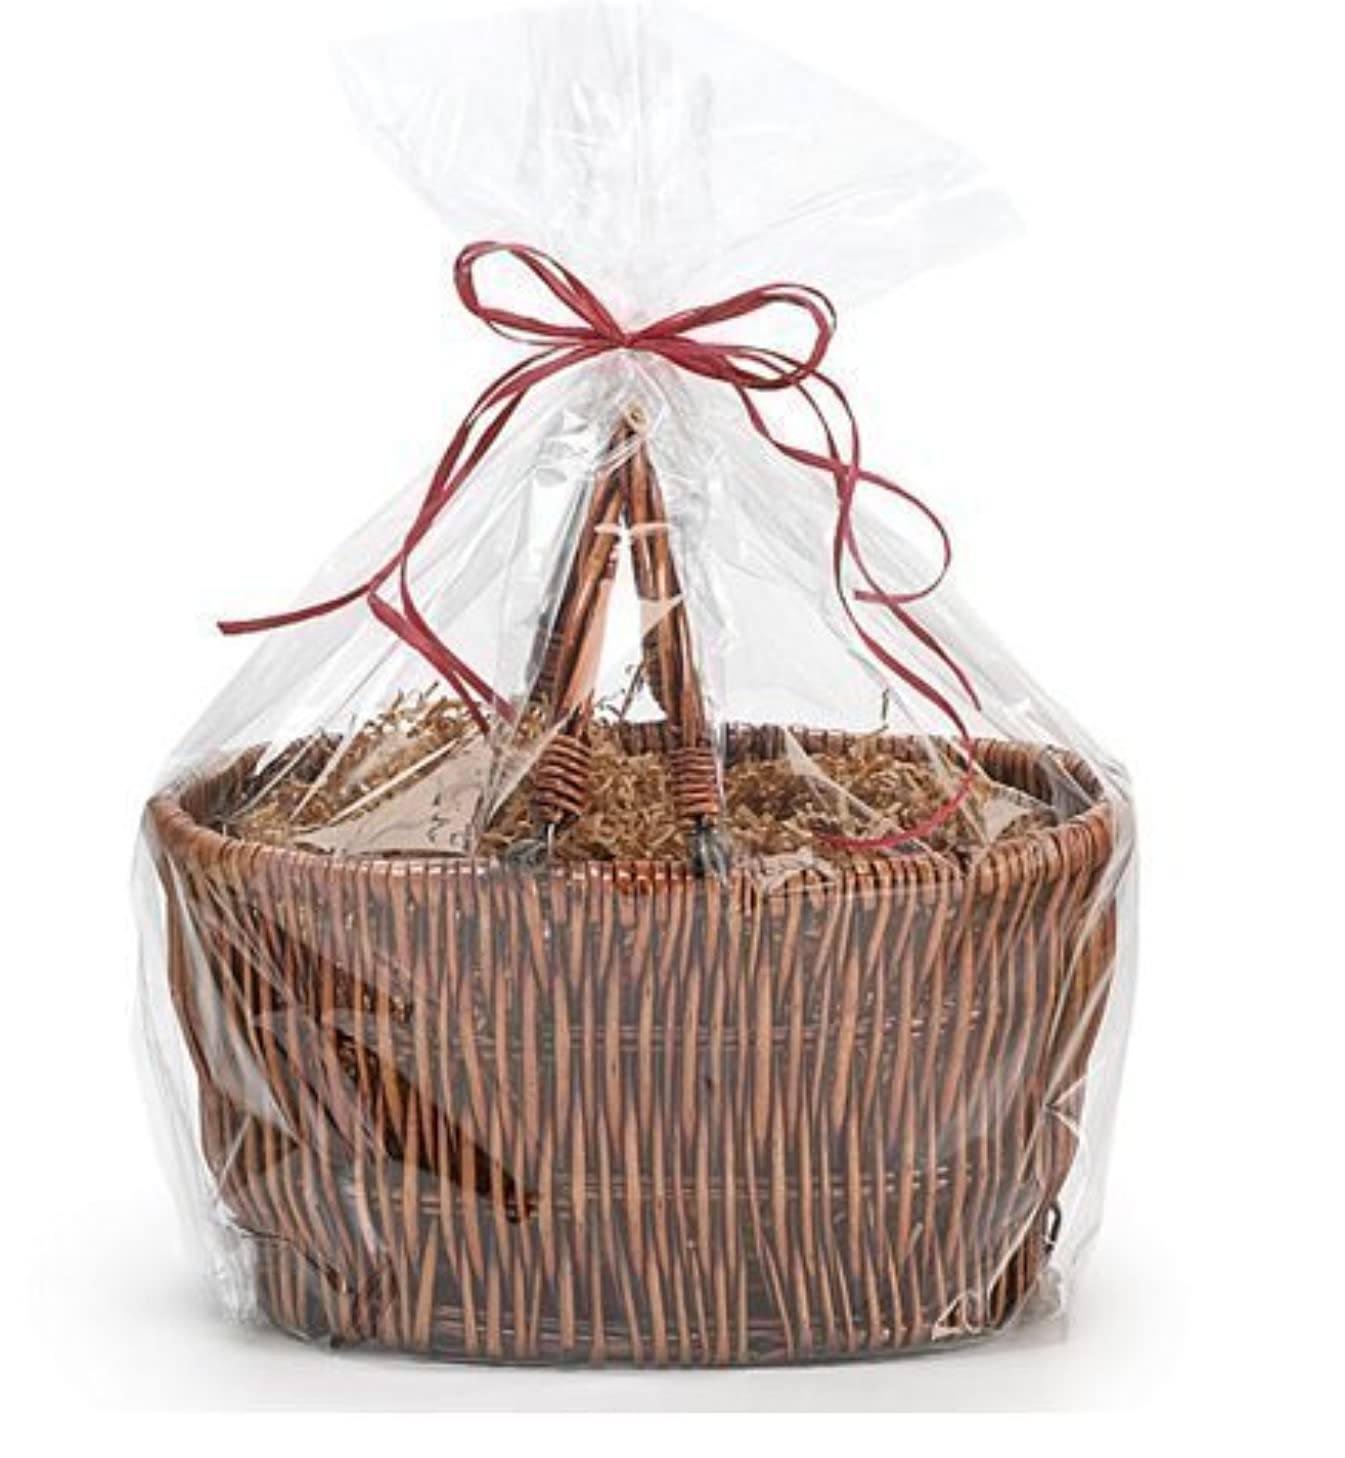 Extra Large Jumbo Cellophane Bags Gift Basket- 30 x 40 Inch Preimum Quality Bags Made in USA - 10 Pack 1.2 MIL A1 bakery supplies